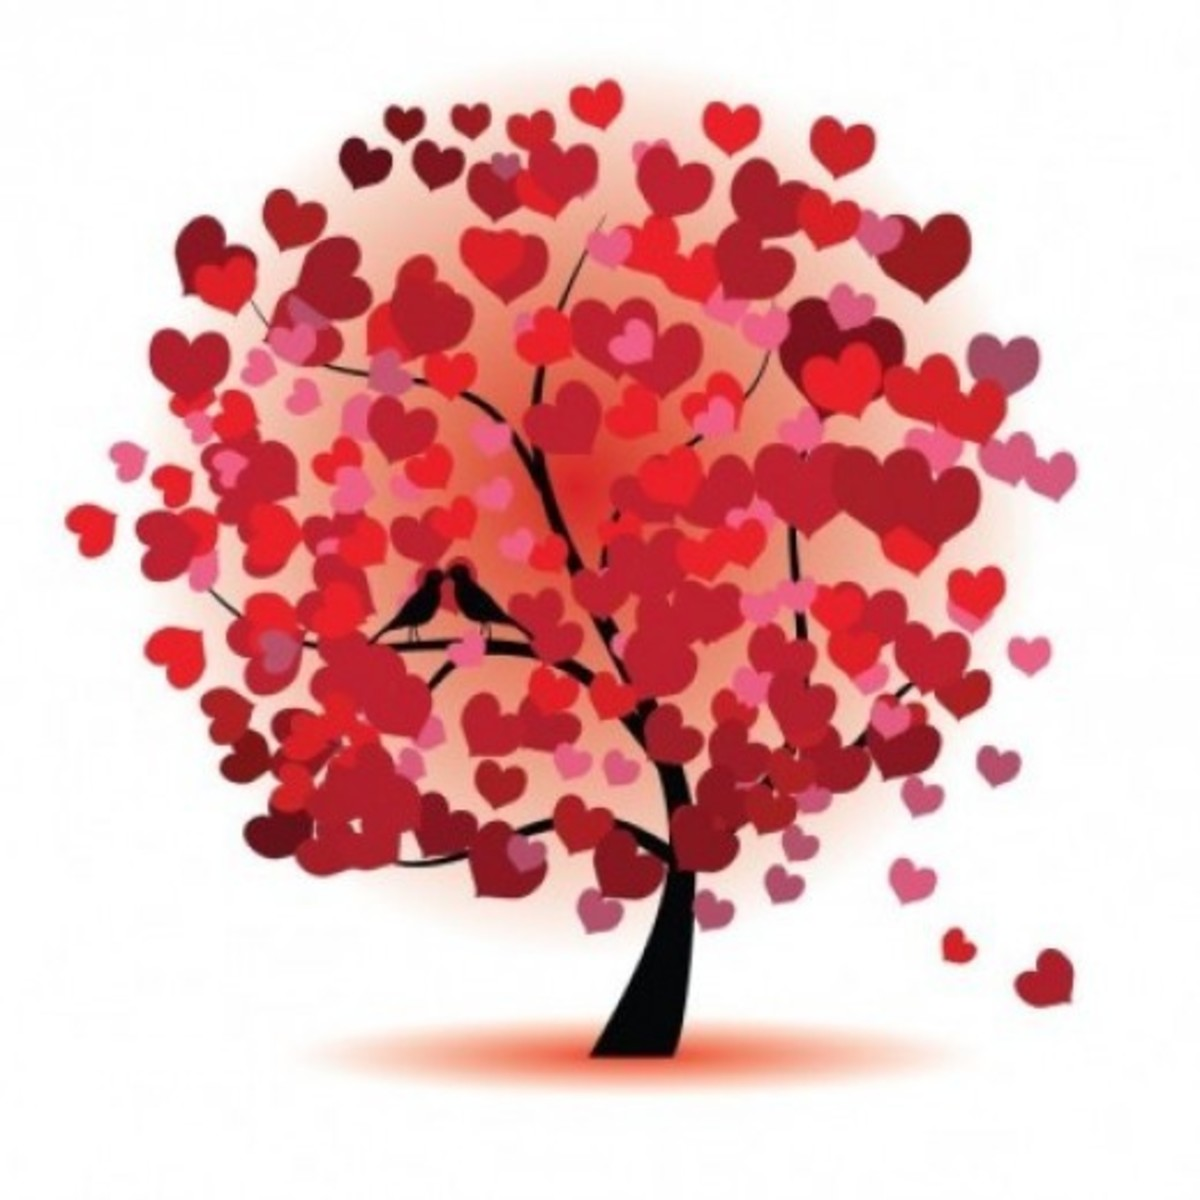 Tree of Hearts with Kissing Birds